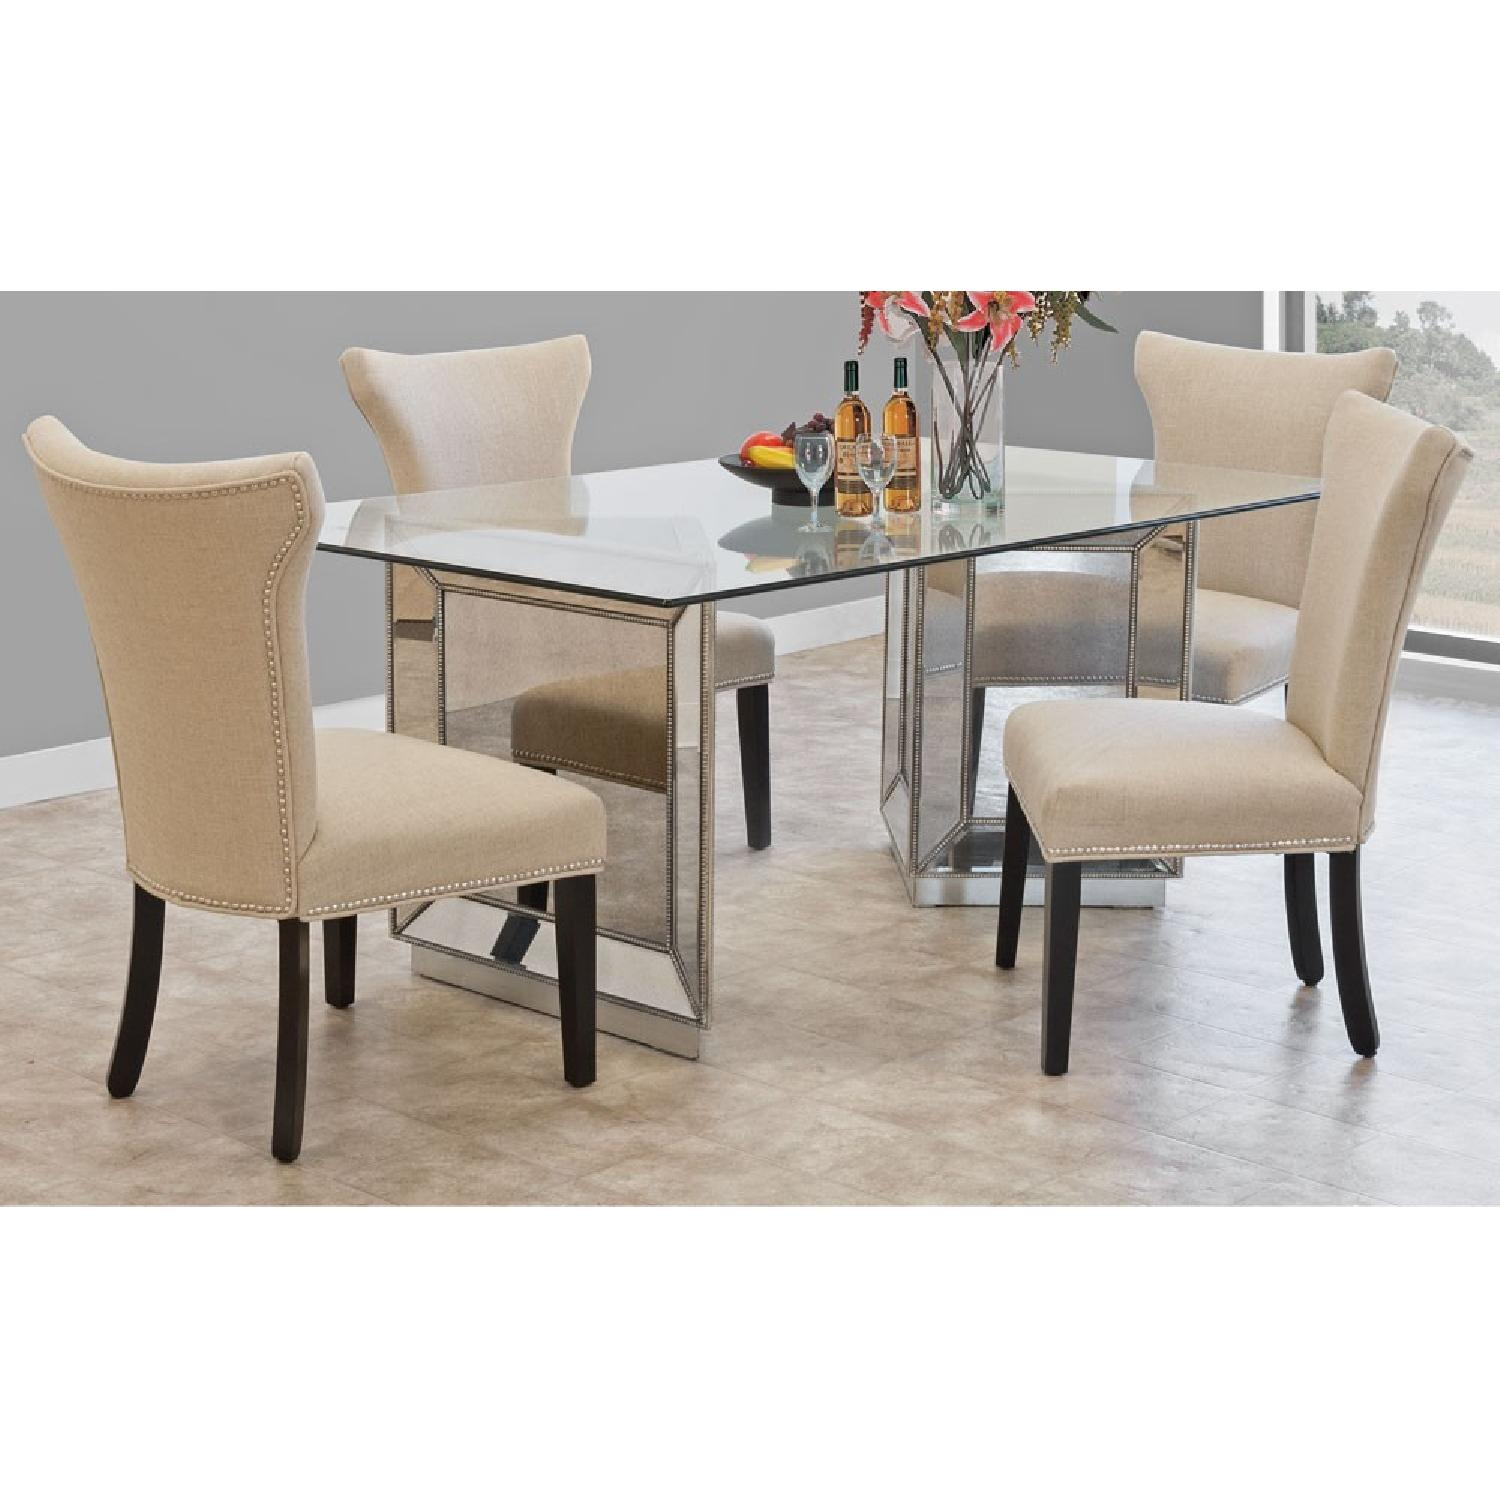 ... Macyu0027s Sophia Mirrored 5 Piece Dining Set 0 ...